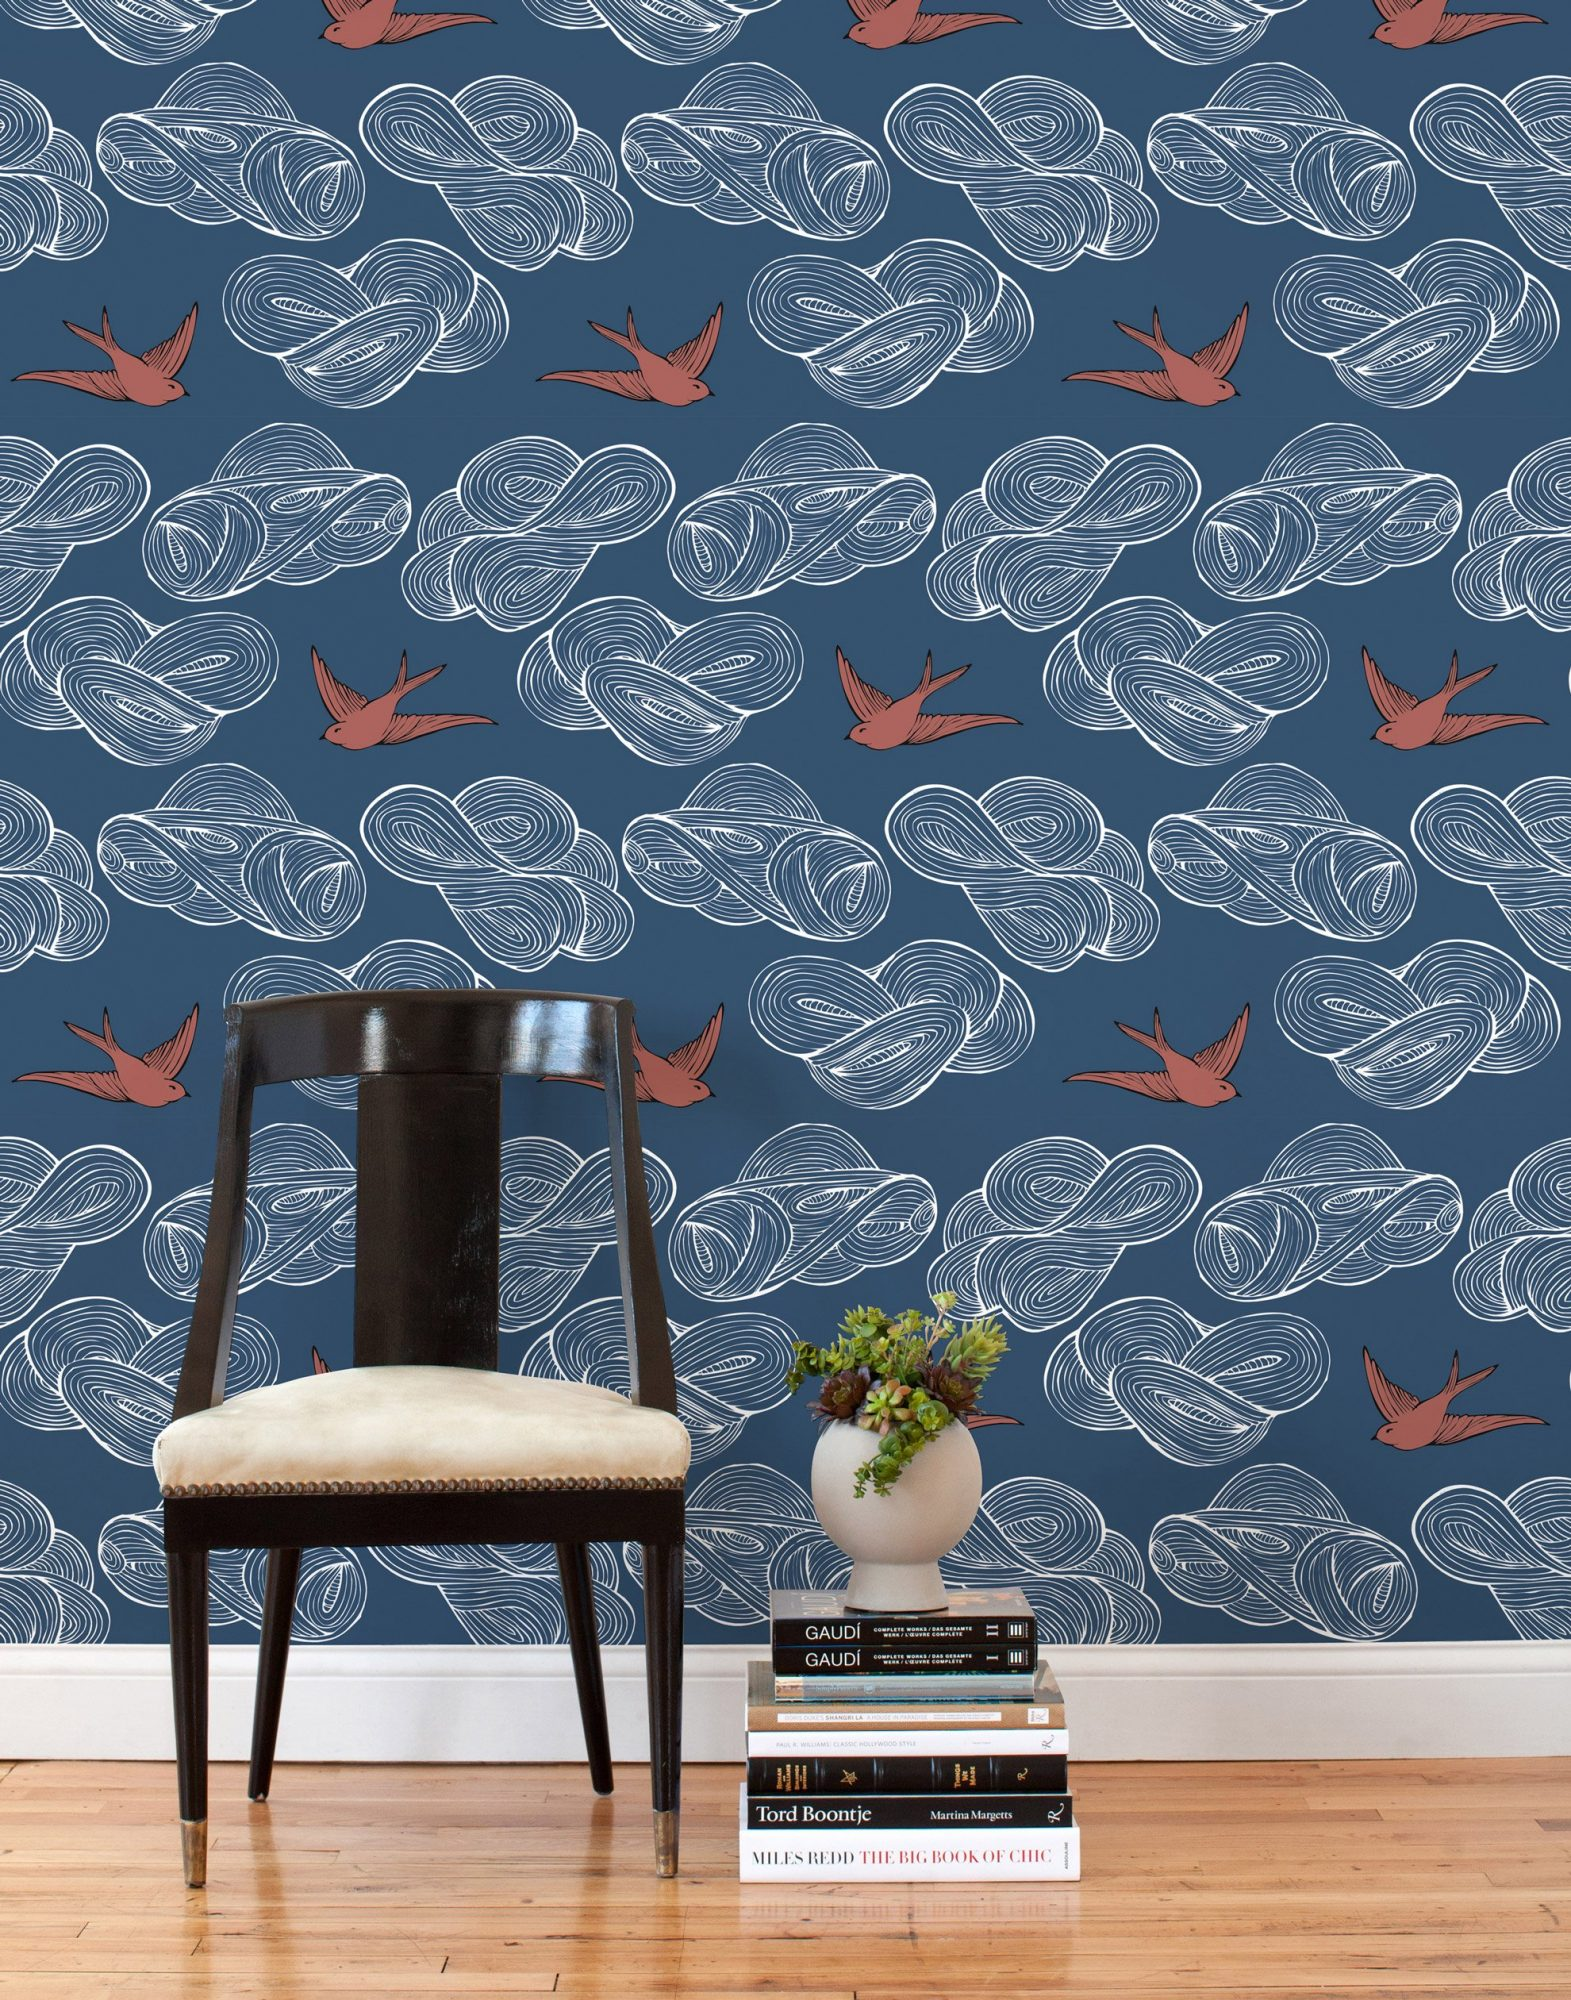 Removable Wallpaper, Hygge and West